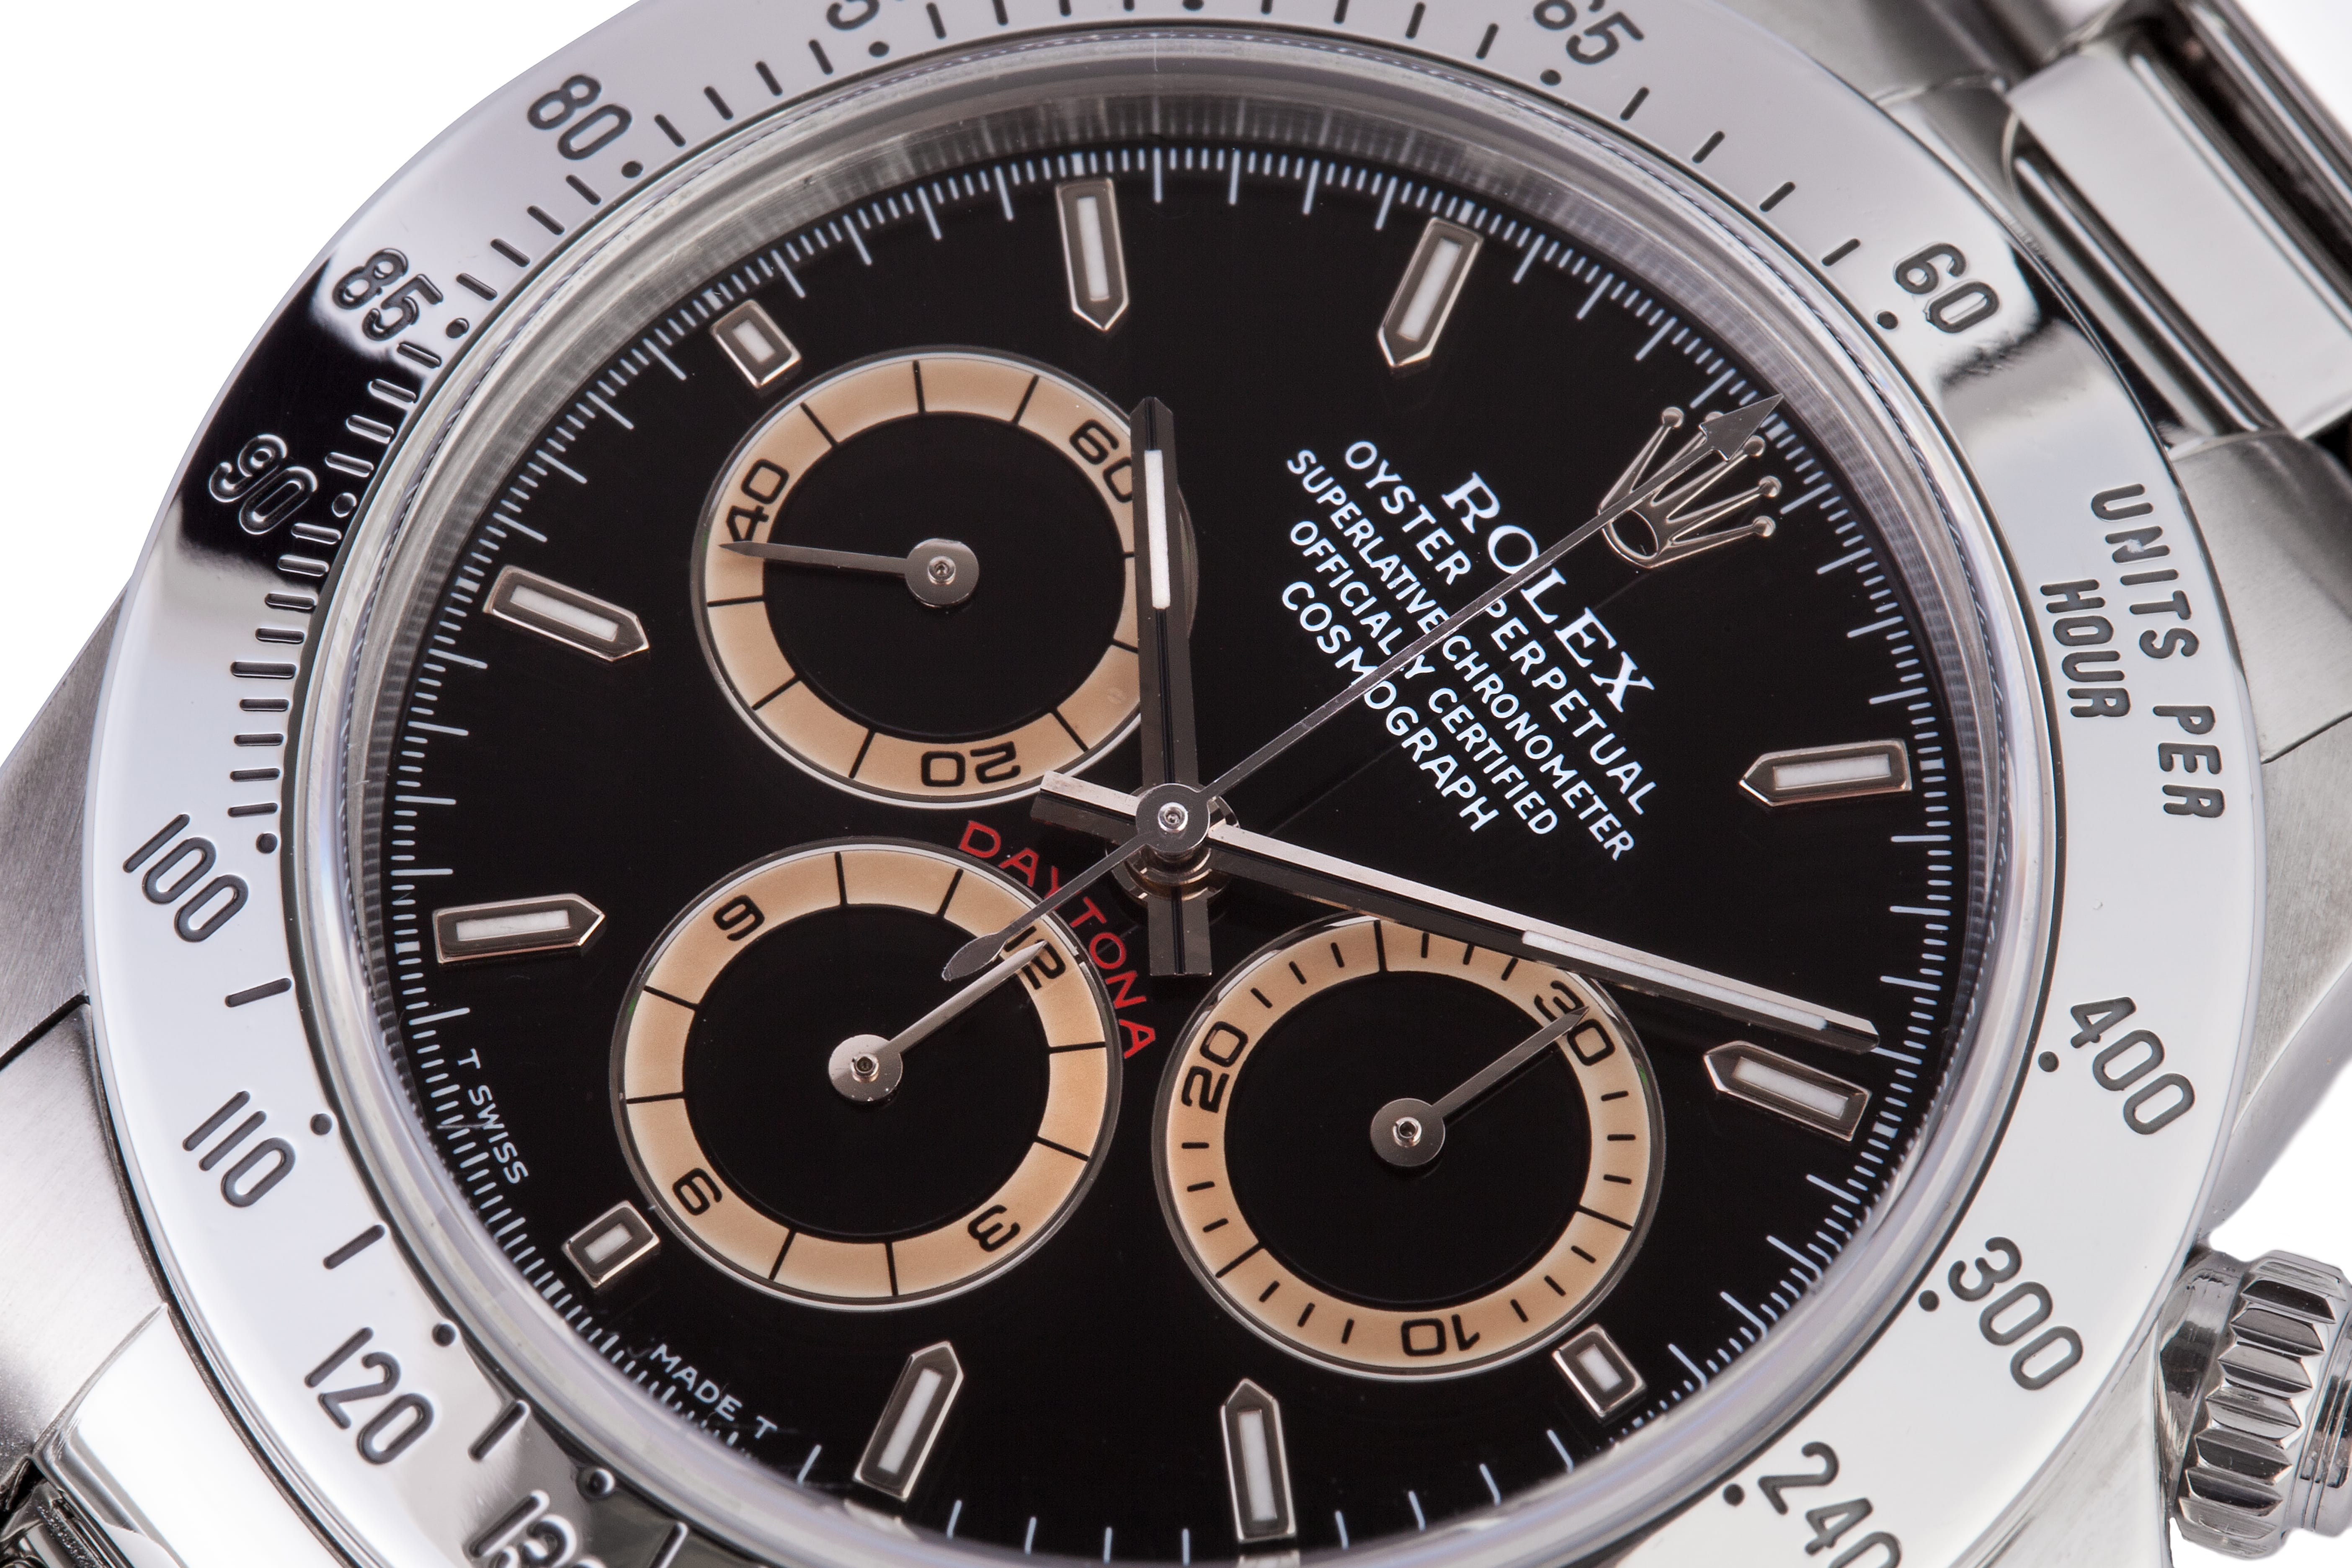 stainless steel cosmograph daytona discolored dials